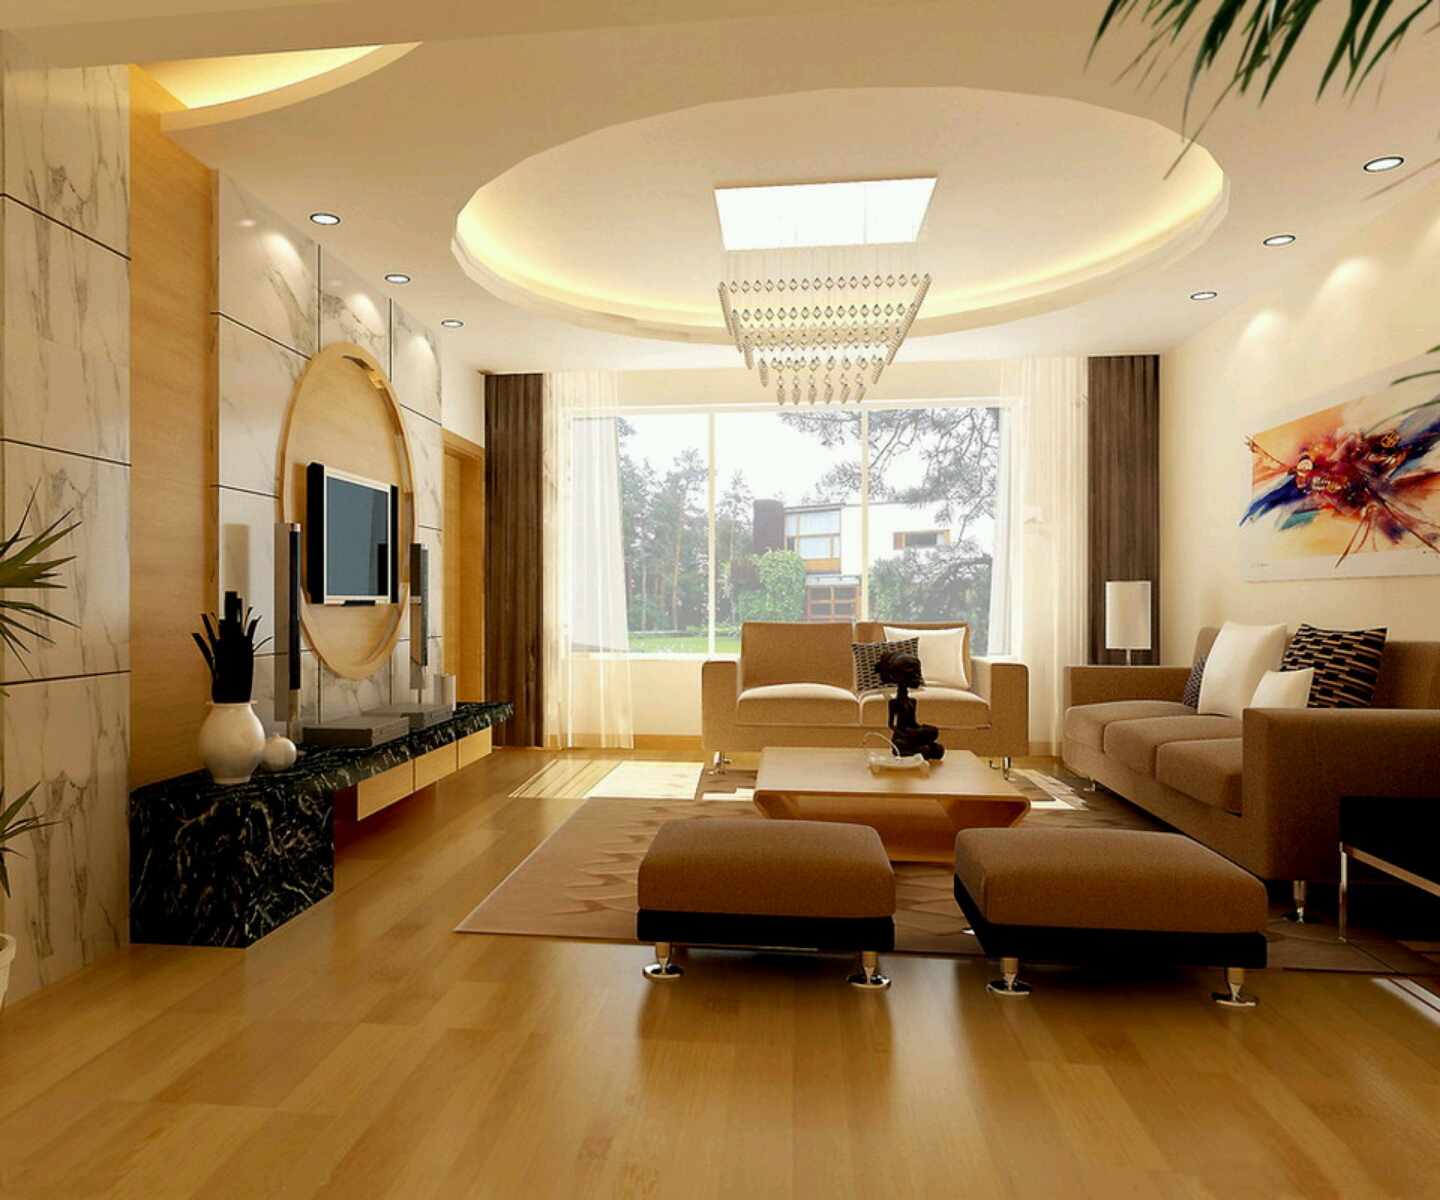 Modern interior decoration living rooms ceiling designs Home and decoration